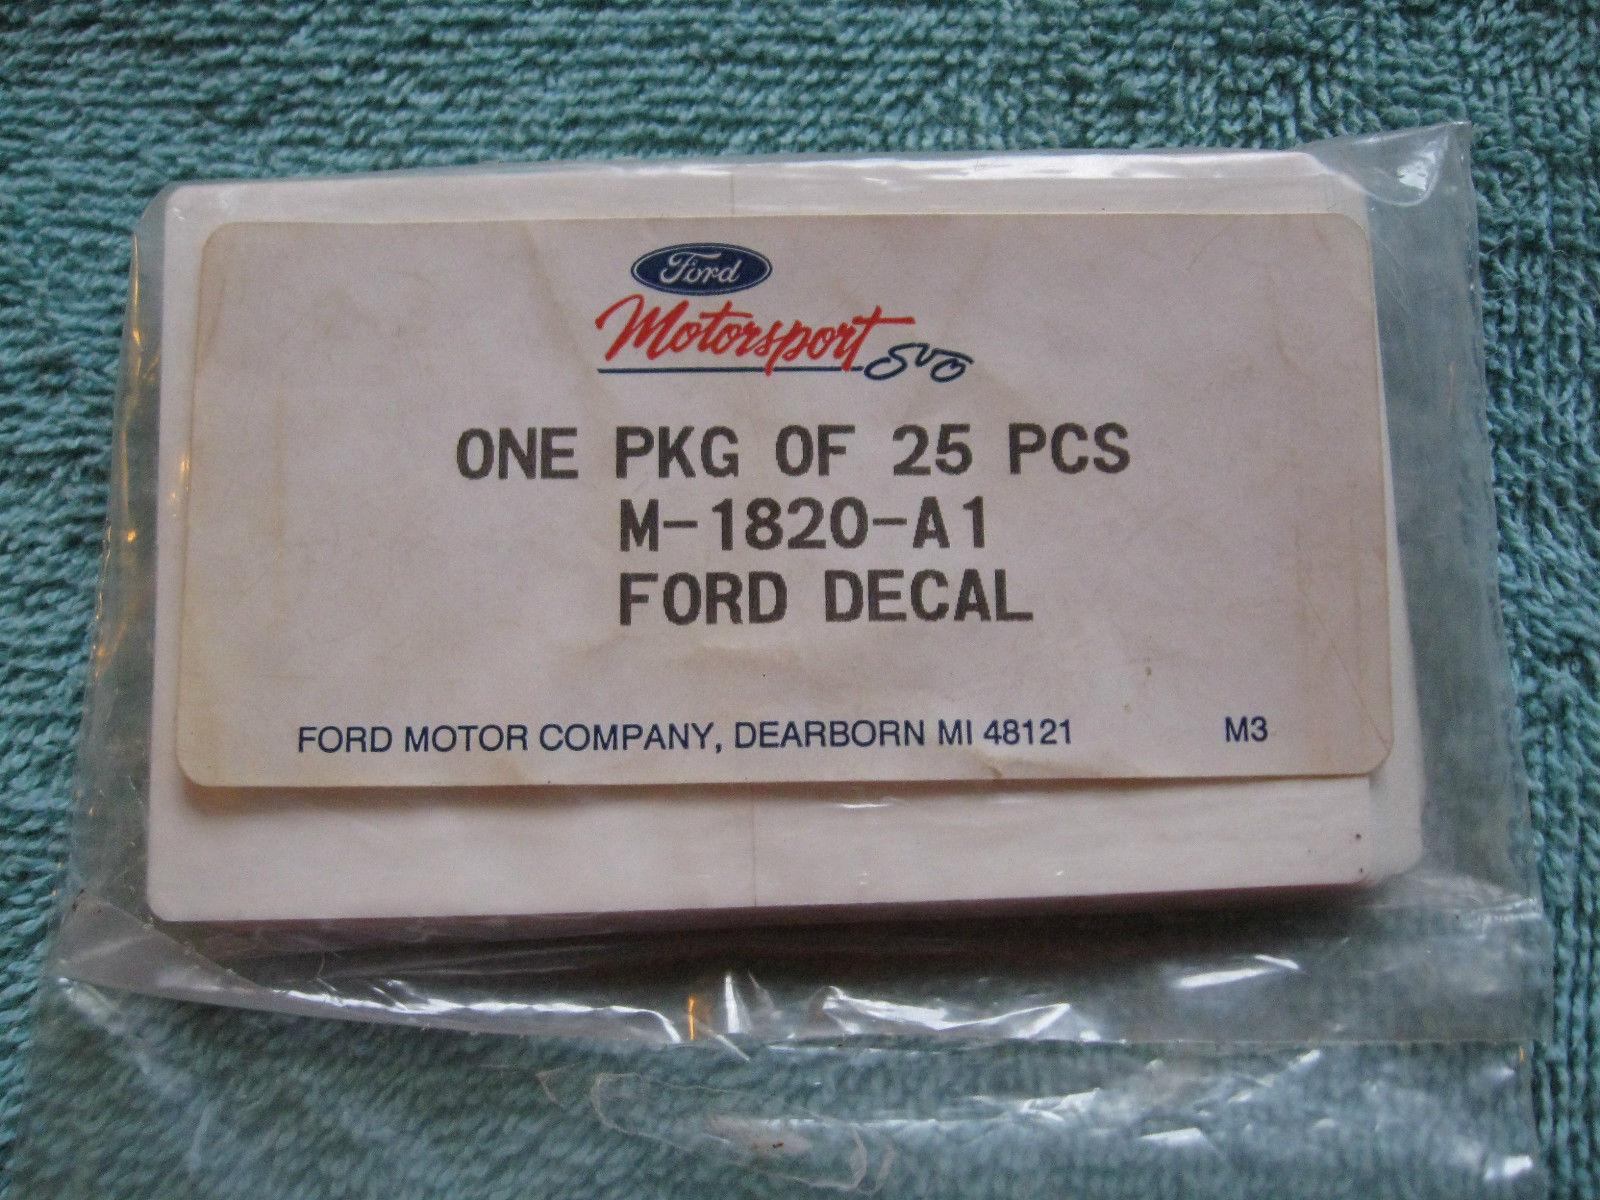 Ford Motorsport SVO - Vintage NOS Decals!!!